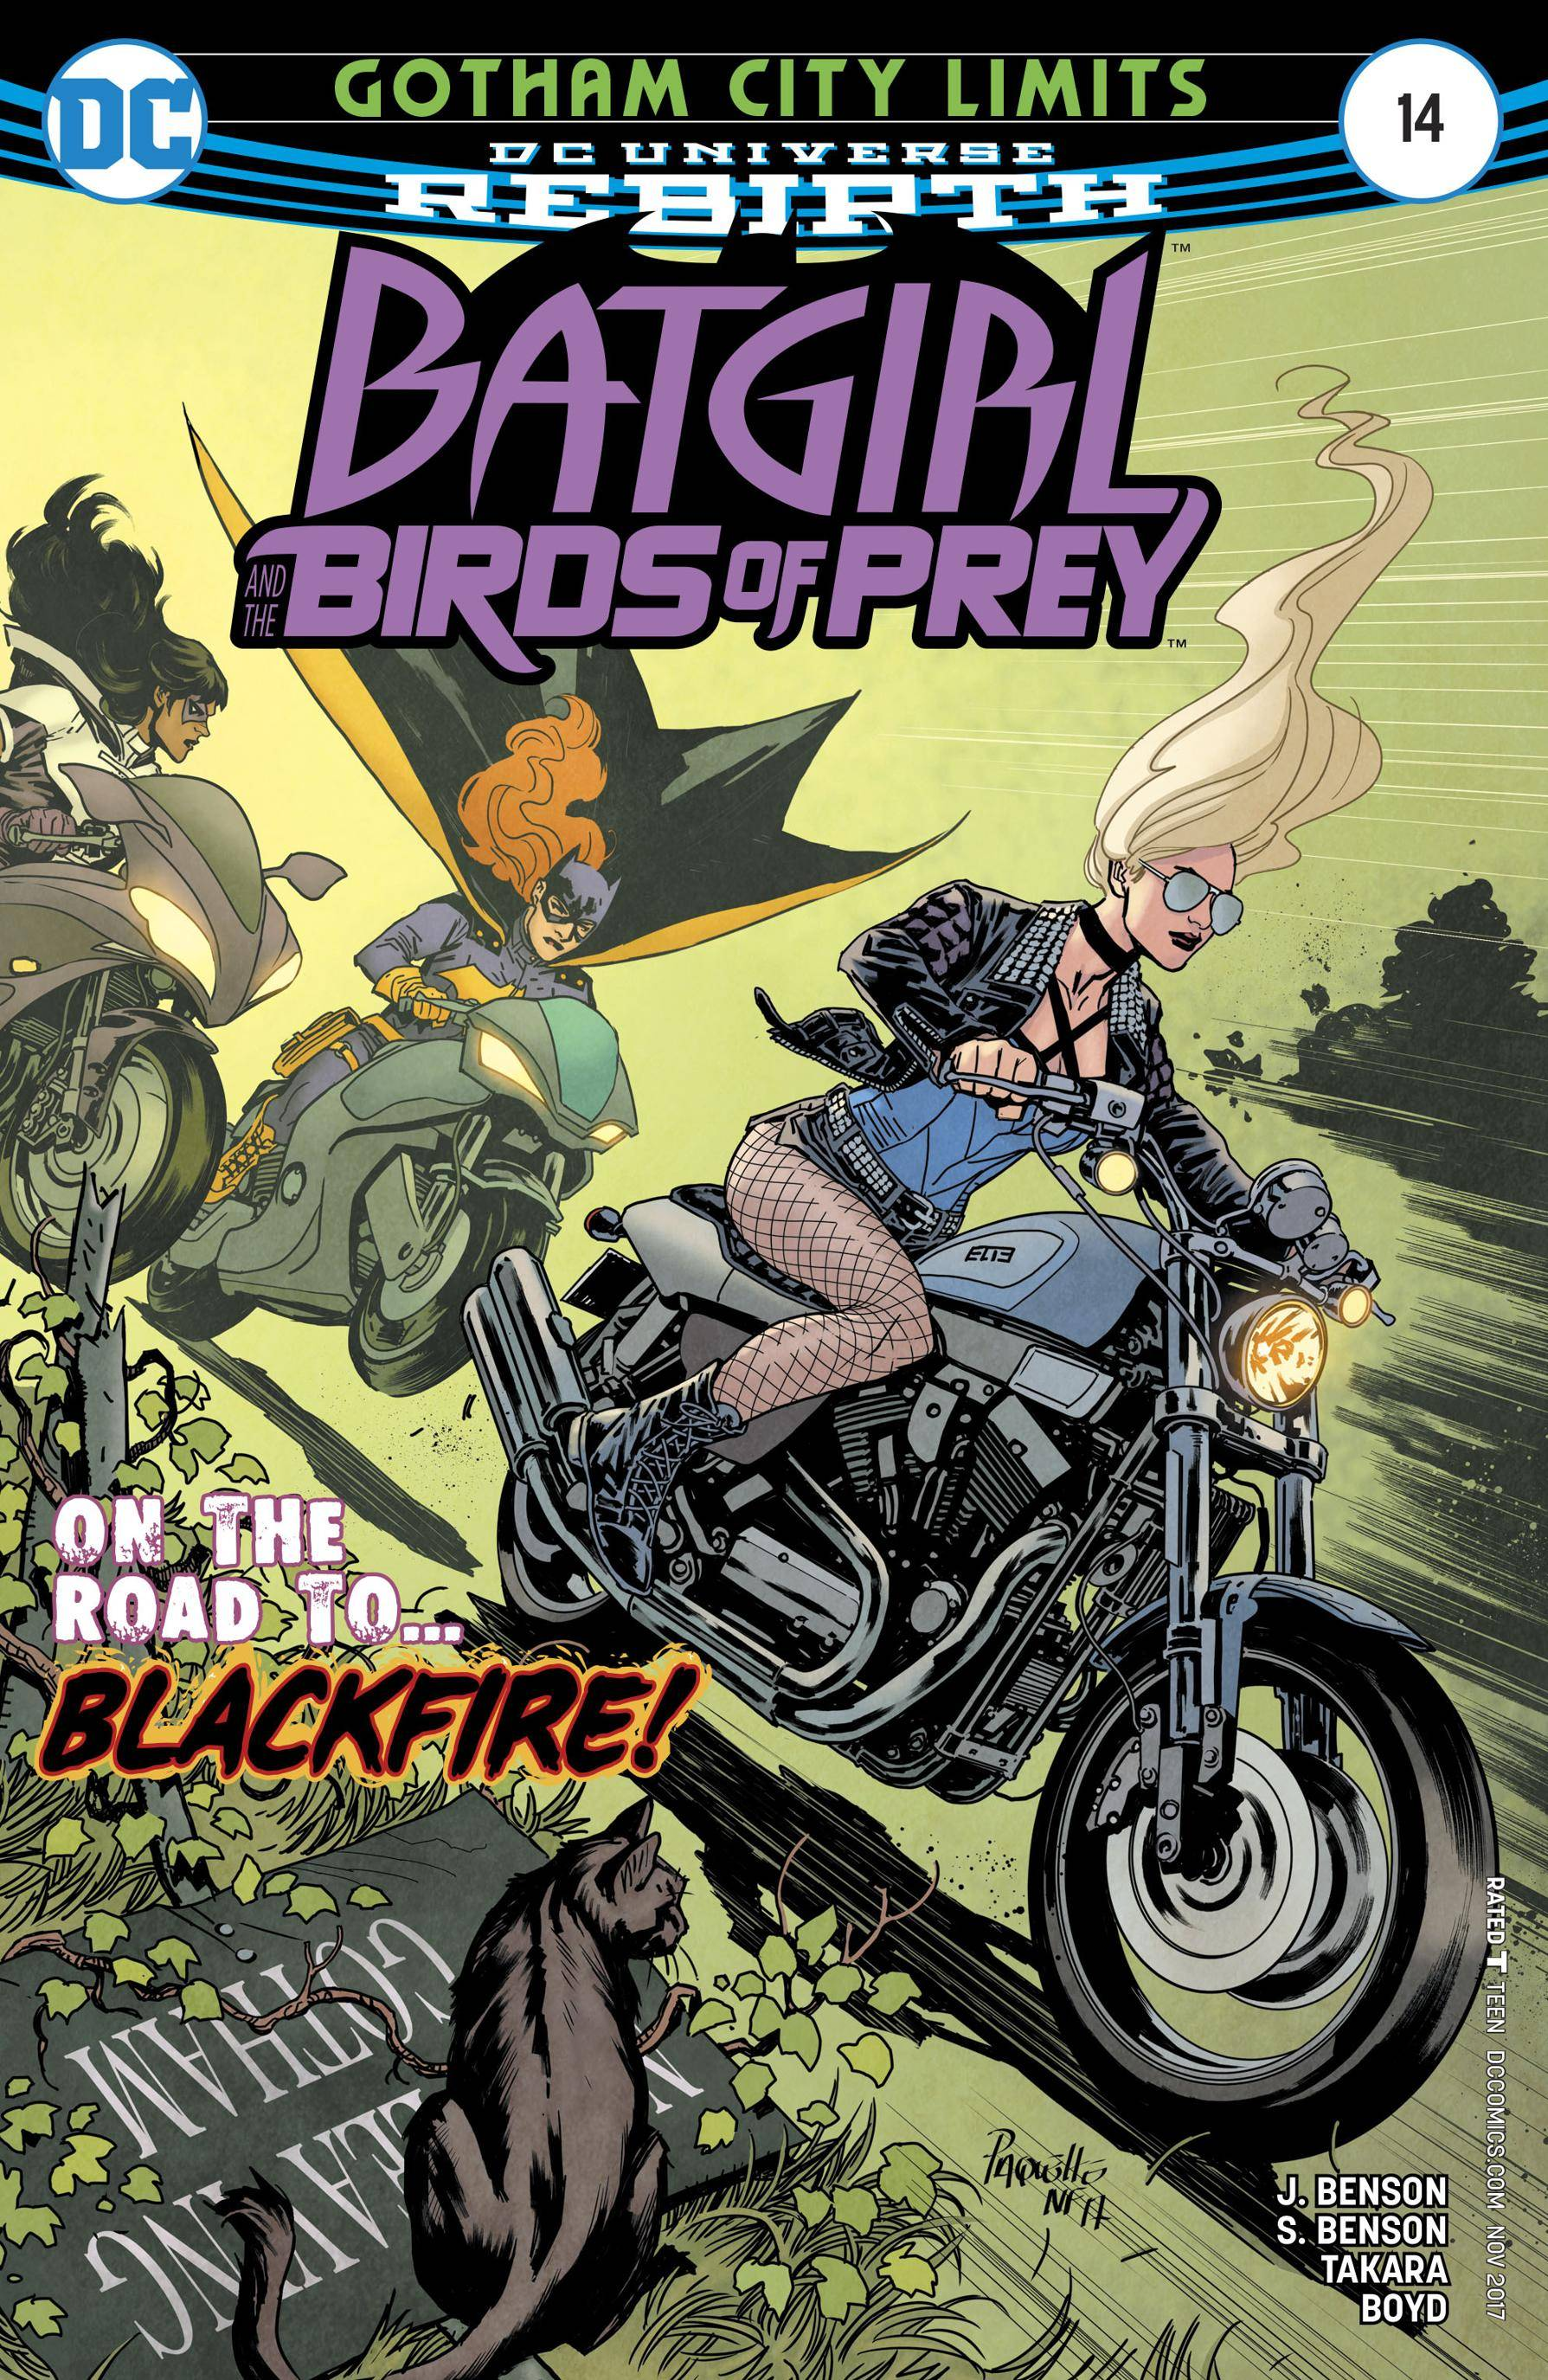 Batgirl and the Birds of Prey 014 2017 2 covers Digital Zone-Empire